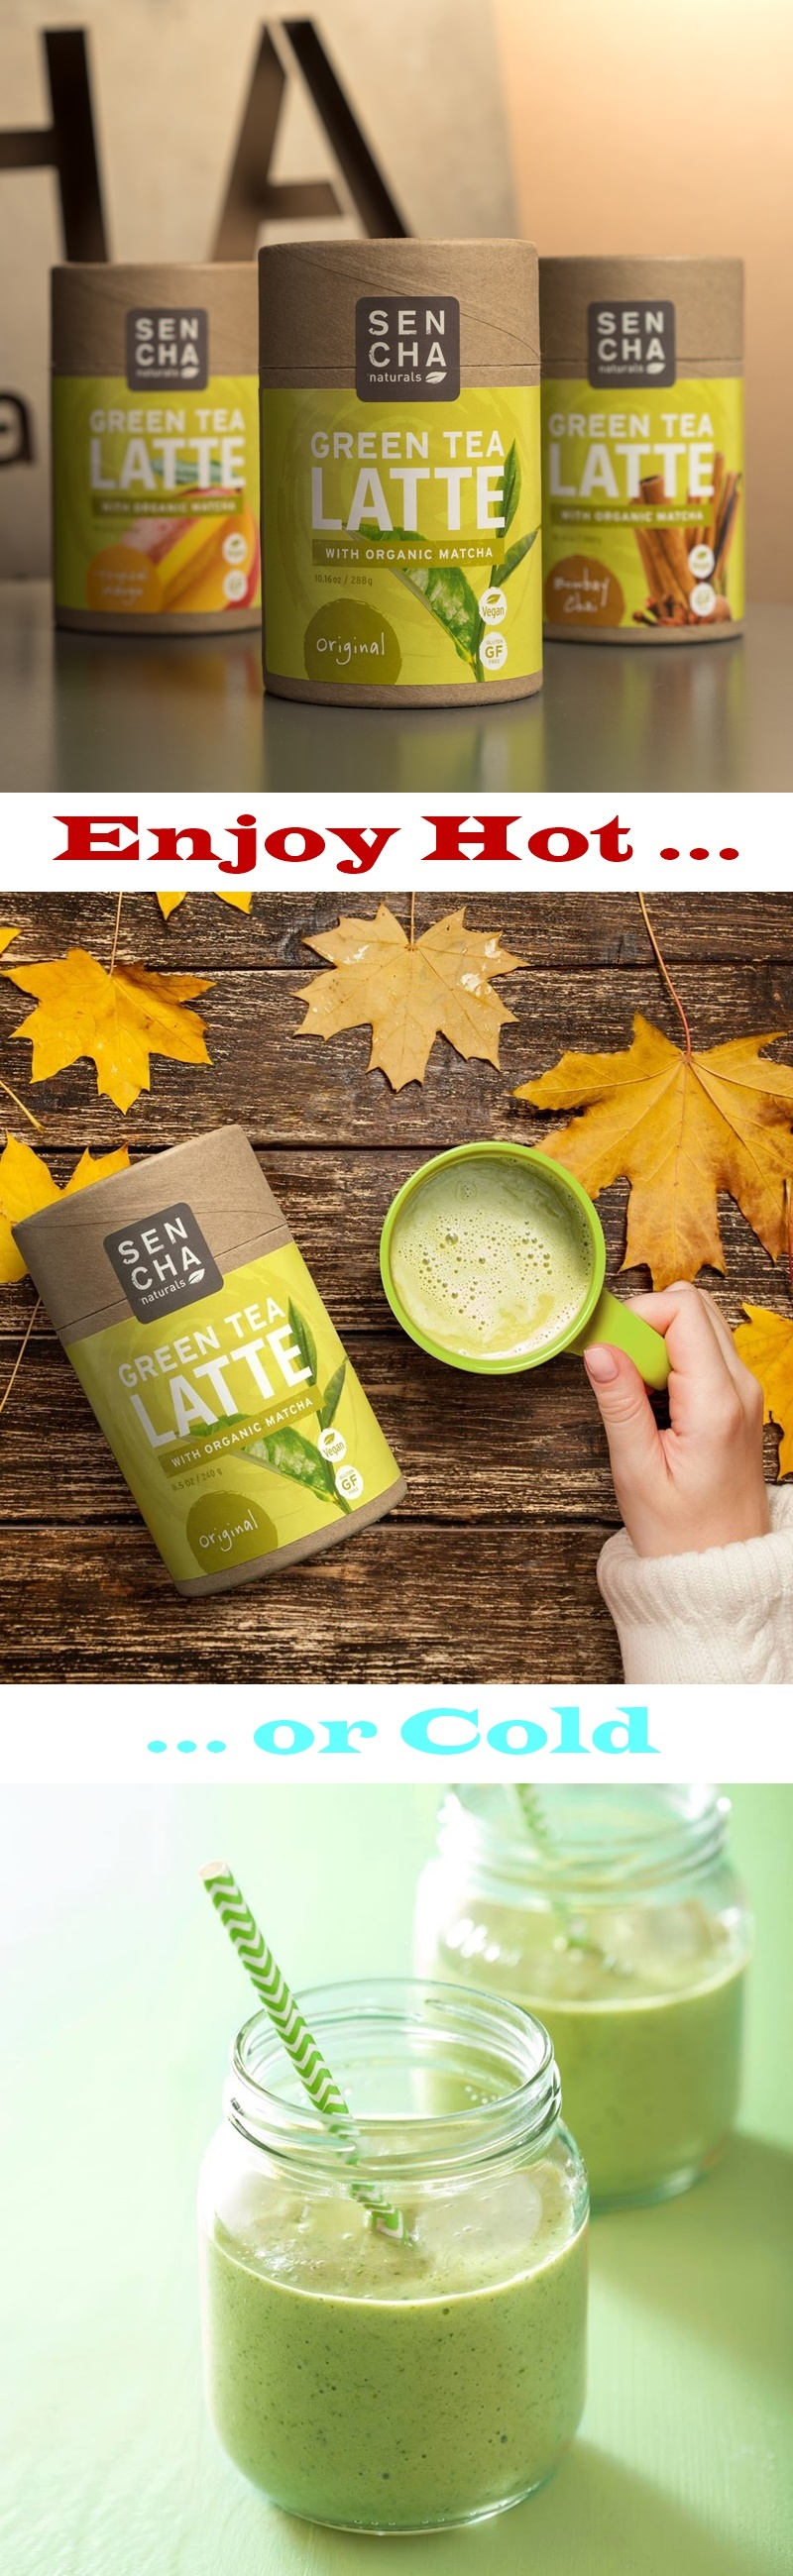 Sencha Naturals Green Tea Latte Mixes - Three Organic Matcha Mixes, all vegan, dairy-free, gluten-free, and allergy-friendly